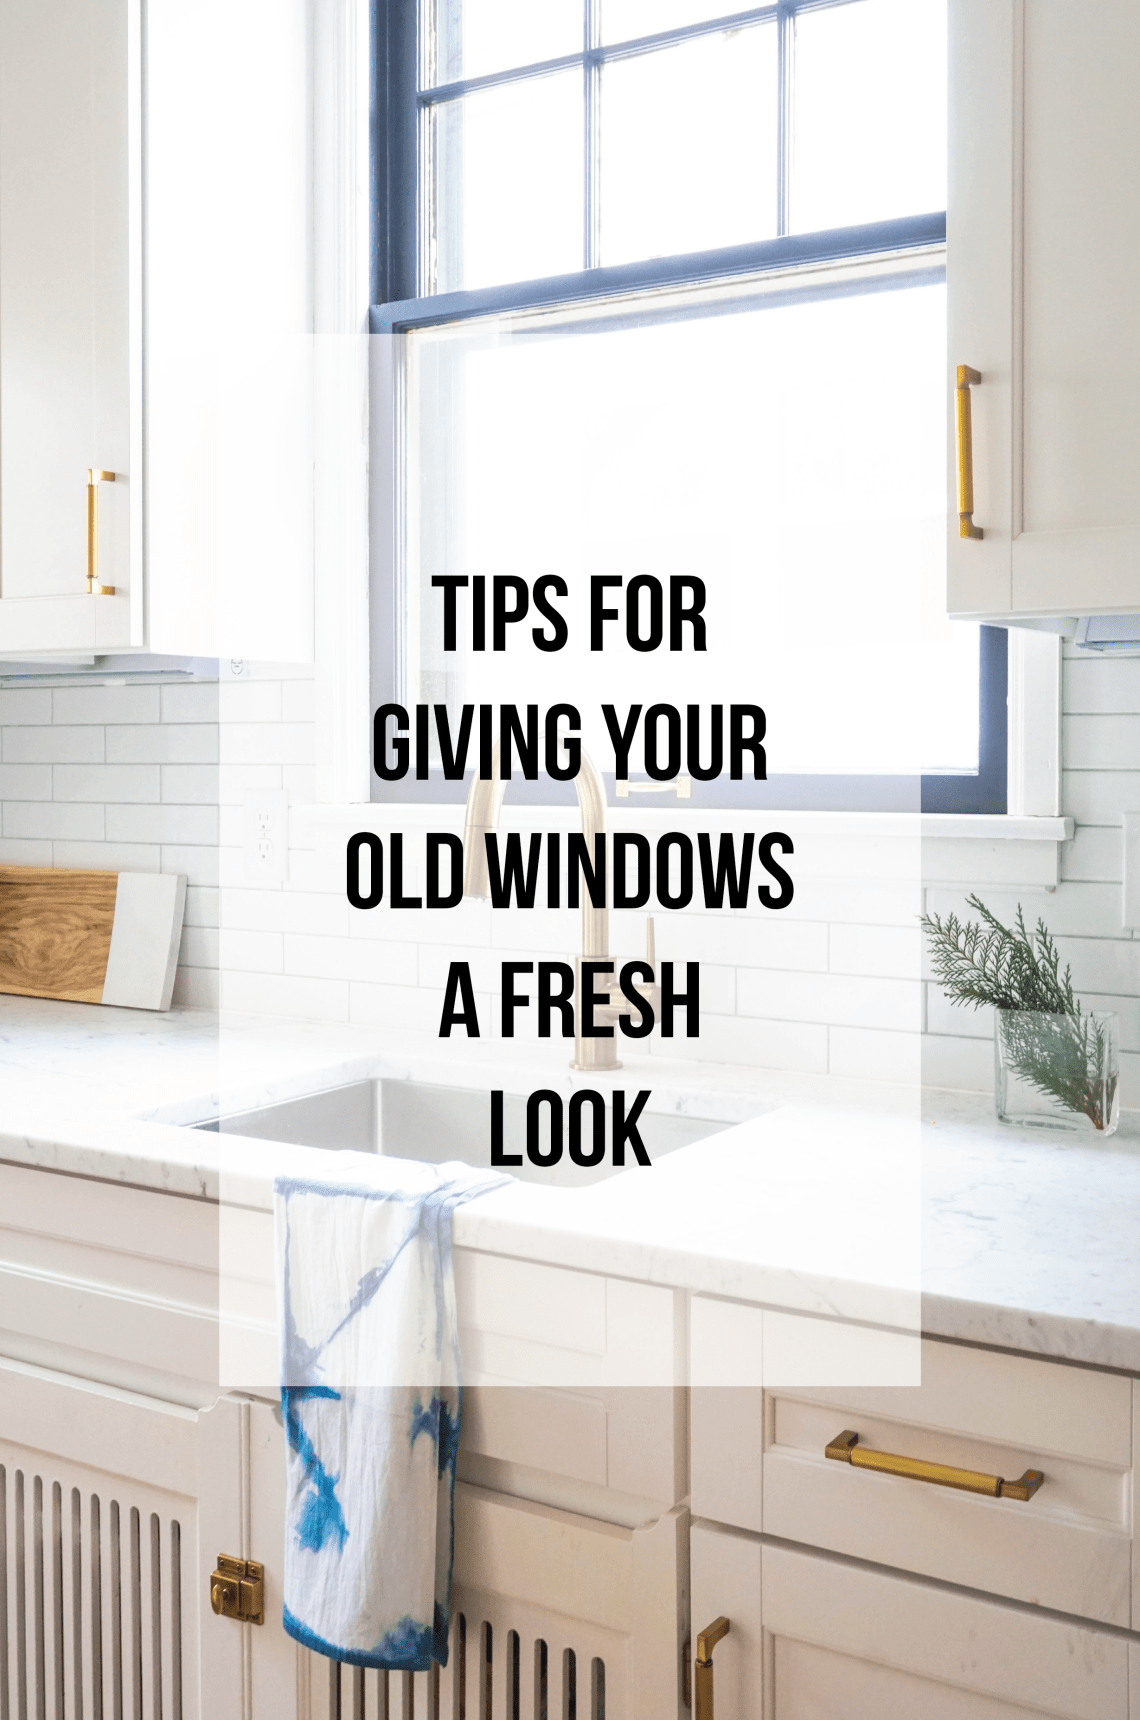 Tips for giving your old windows a new look!